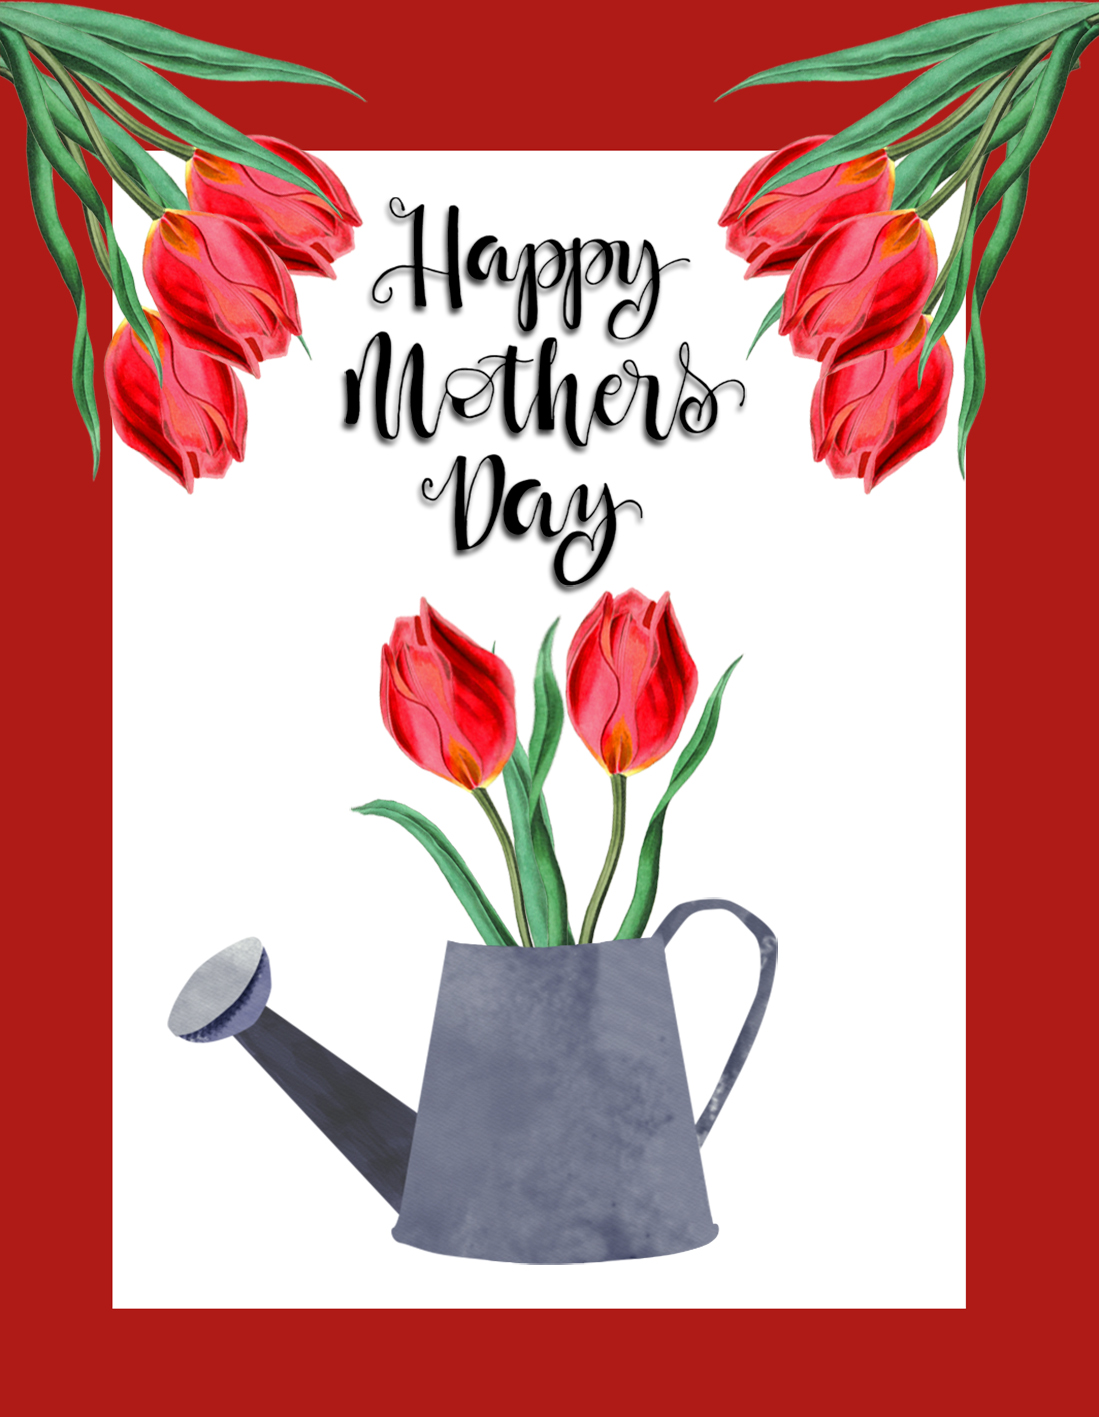 Happy Mother's Day card tulips watering can